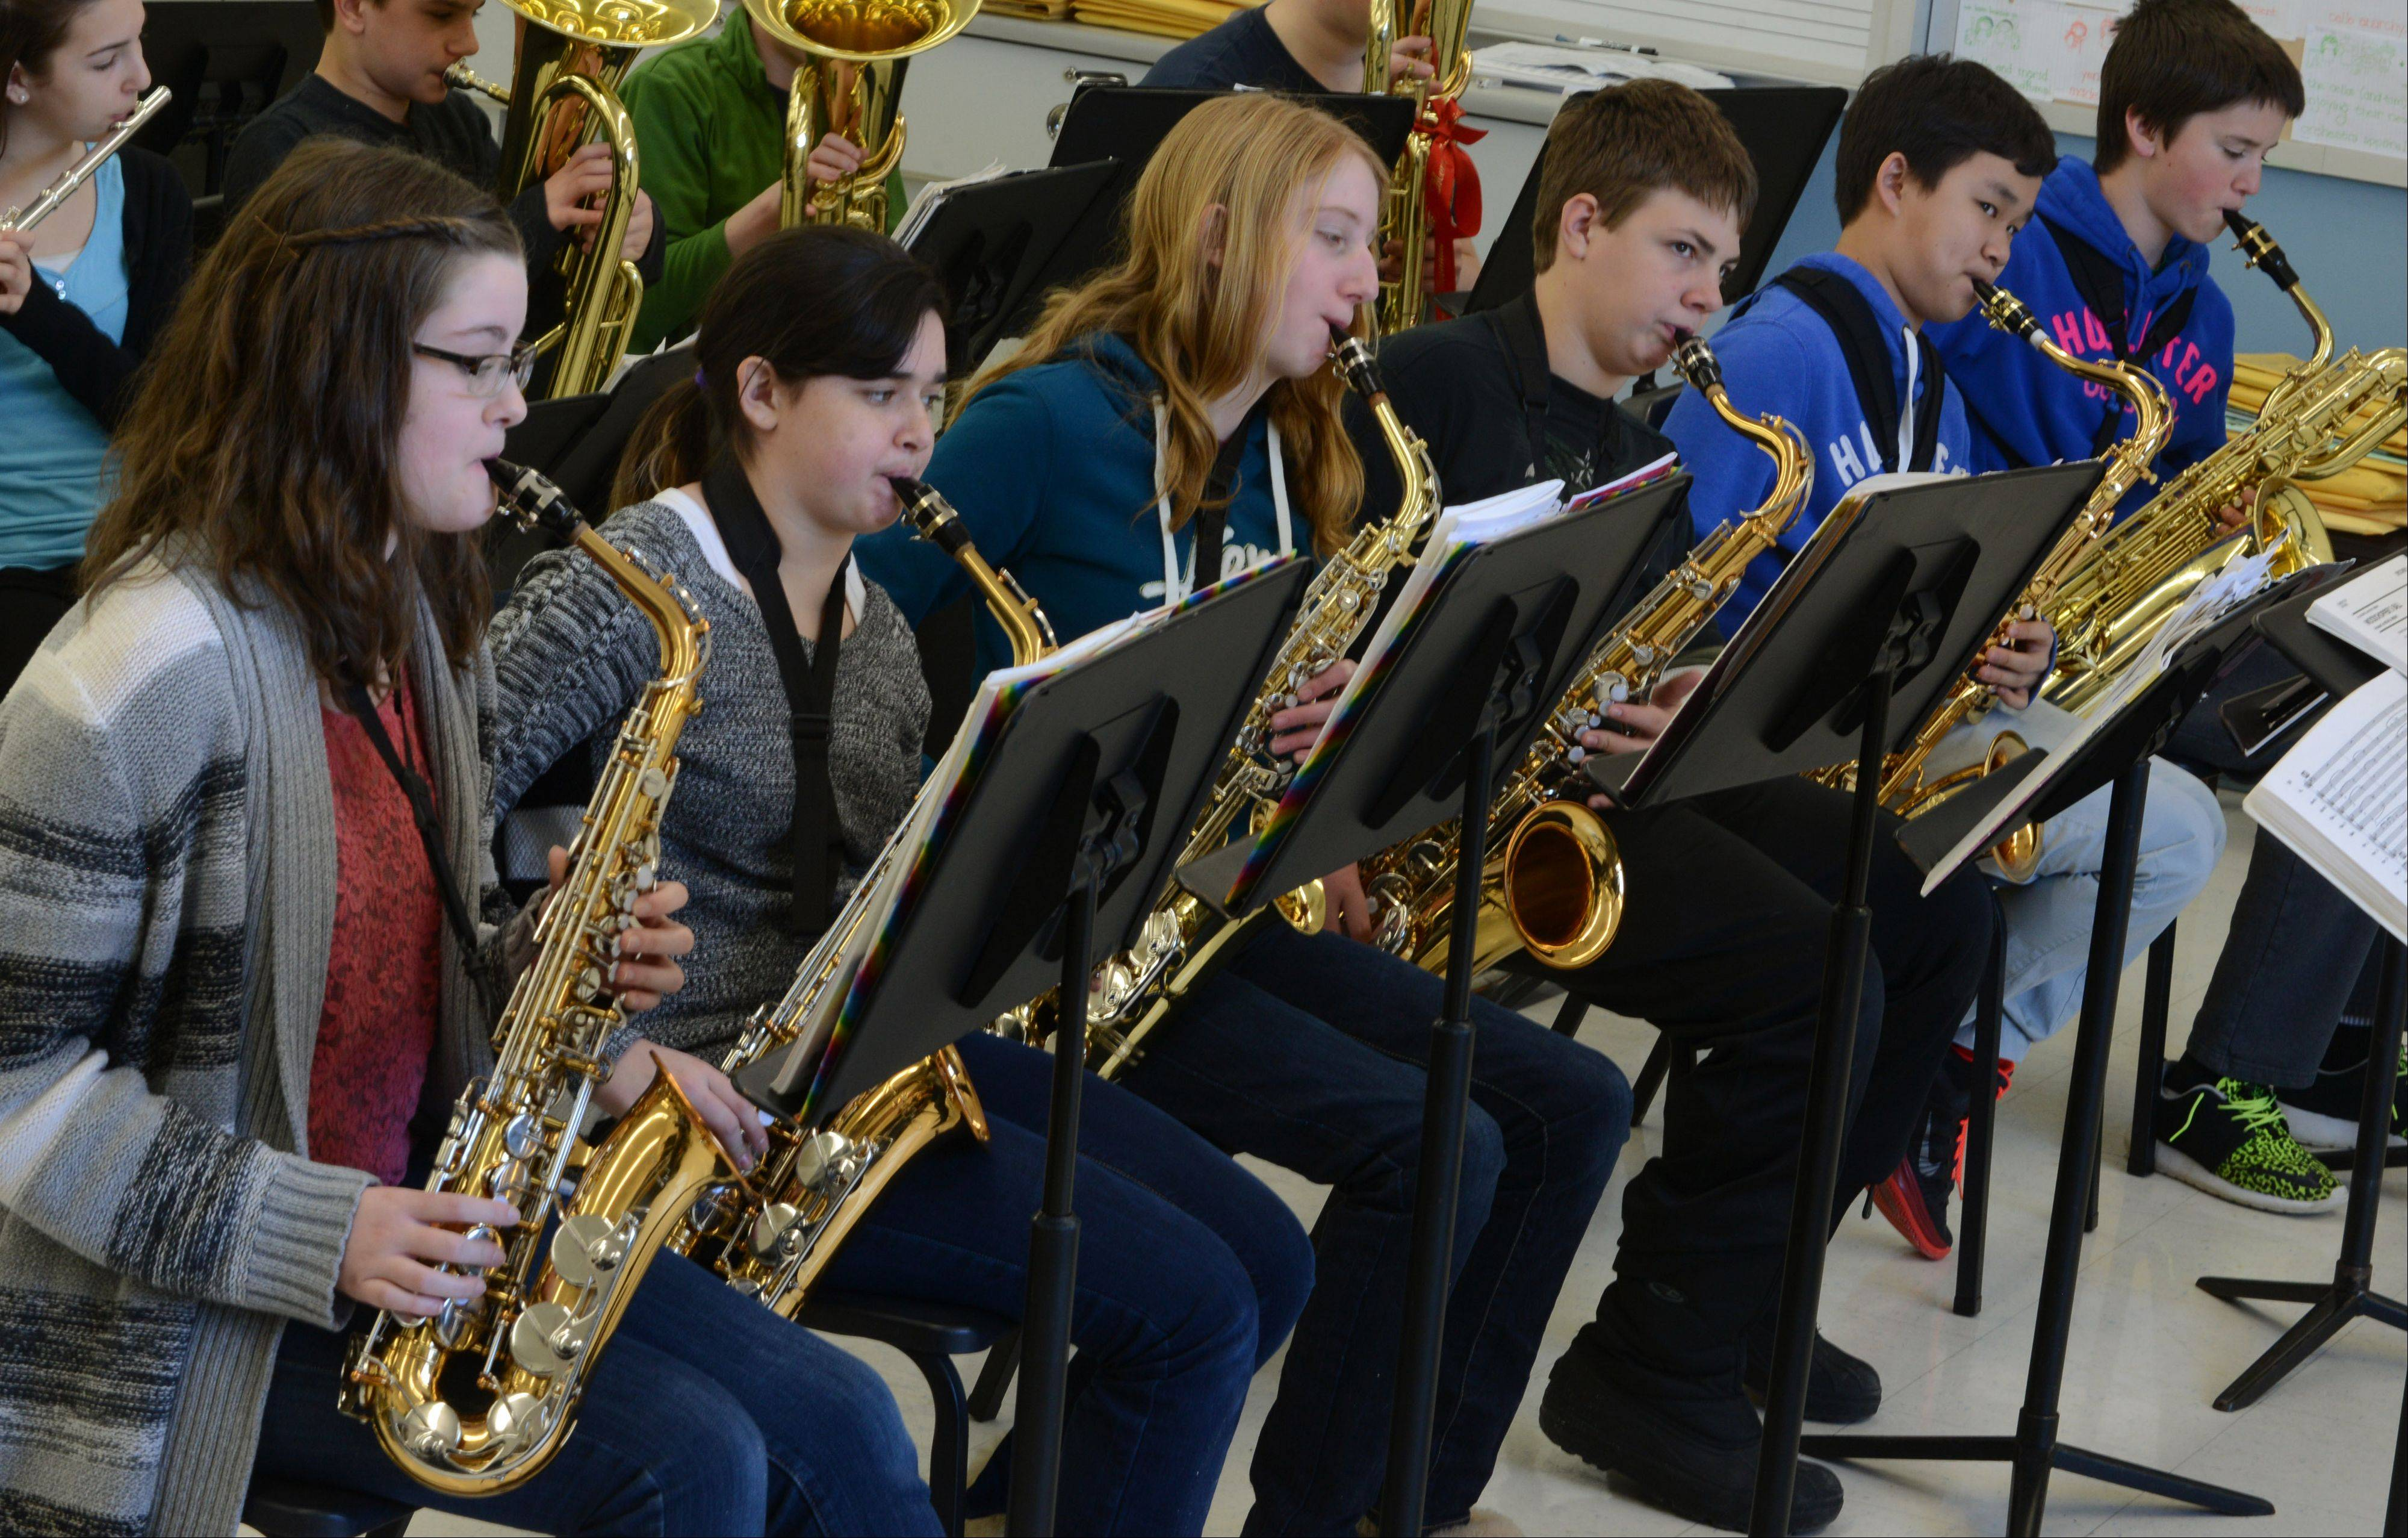 Oak Grove Middle School students from Green Oaks play for Libertyville High School's jazz director Tim Barclay during a clinic at Tuesday's Jazz Festival at Libertyville High School. Students took the stage in the afternoon for performances following the clinics.